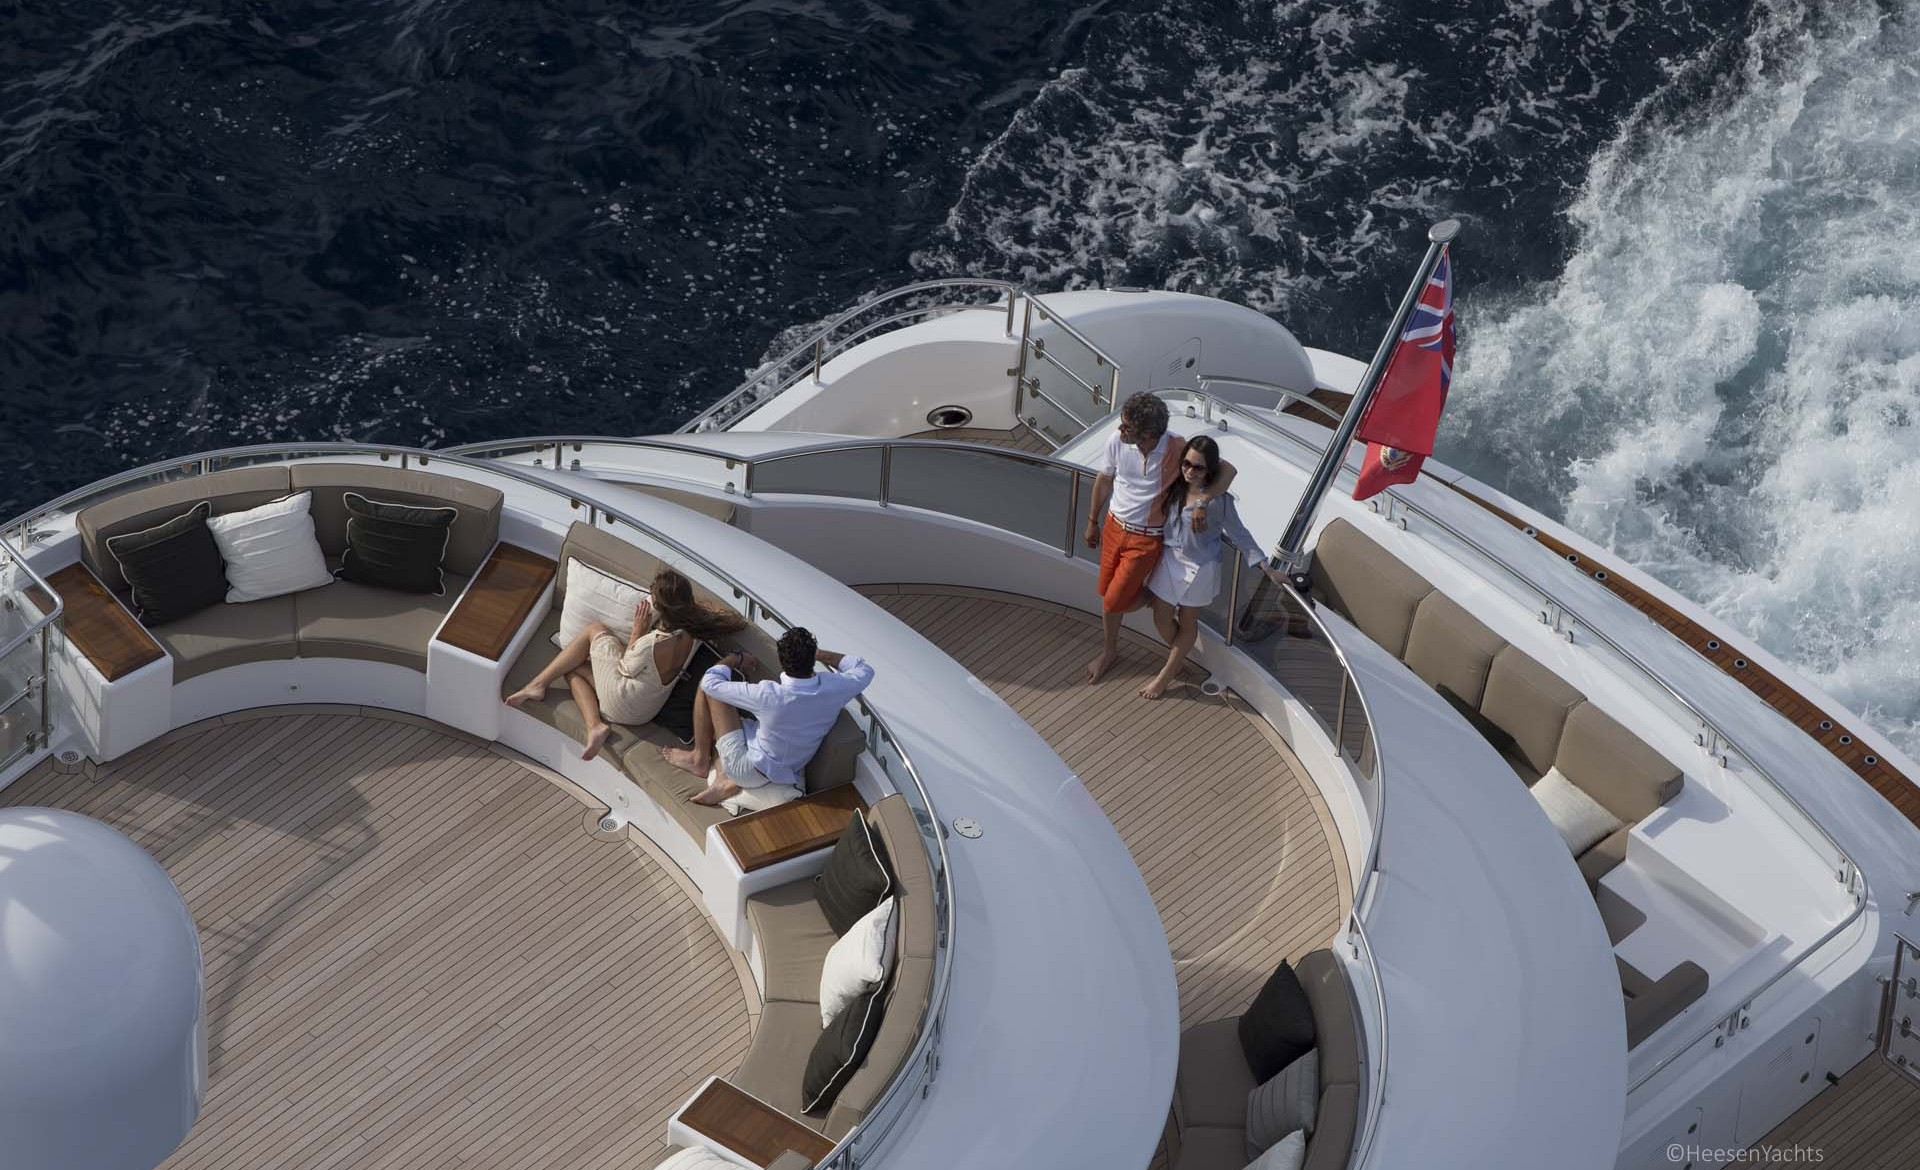 Aerial Close Up Of The Aft Decks With Excellent Seating Arrangements